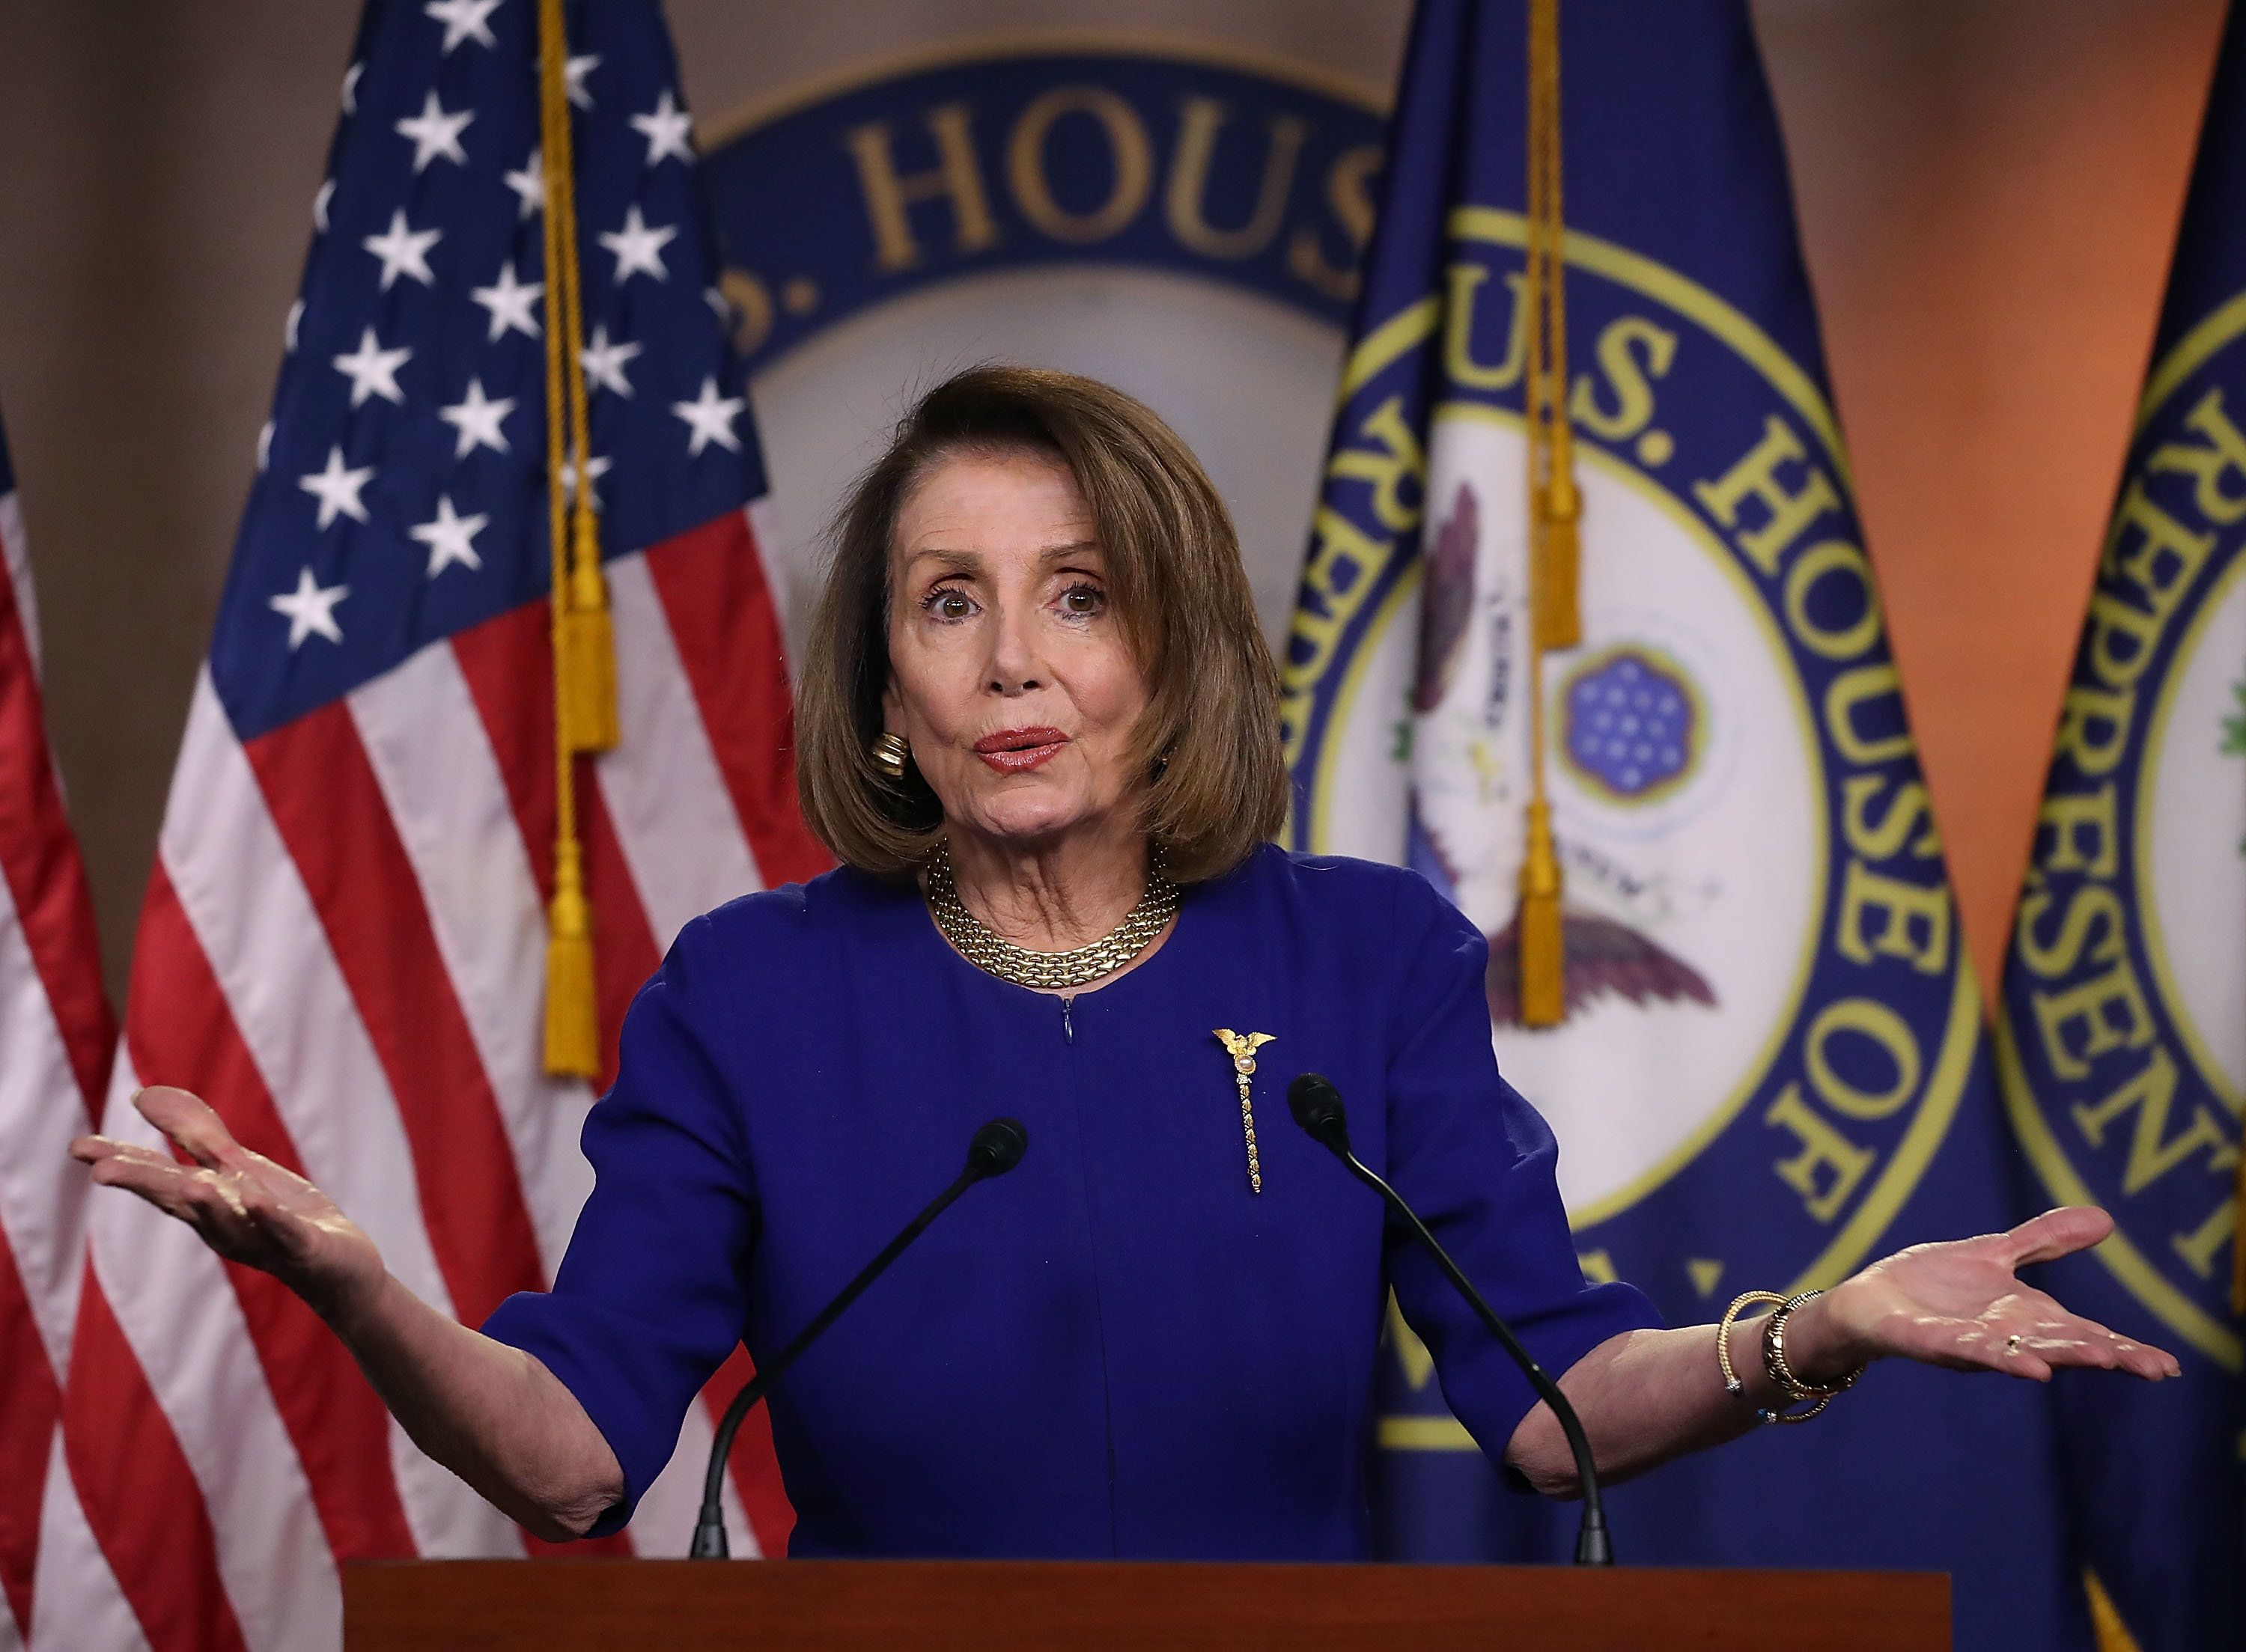 WASHINGTON, DC - FEBRUARY 07:  U.S. Speaker of the House Nancy Pelosi speaks during her weekly press conference on February 7, 2019 in Washington, DC. Pelosi answered a questions about House investigations of President Trump to ongoing negotiations to fund the federal government beyond February 15.  (Photo by Mark Wilson/Getty Images)